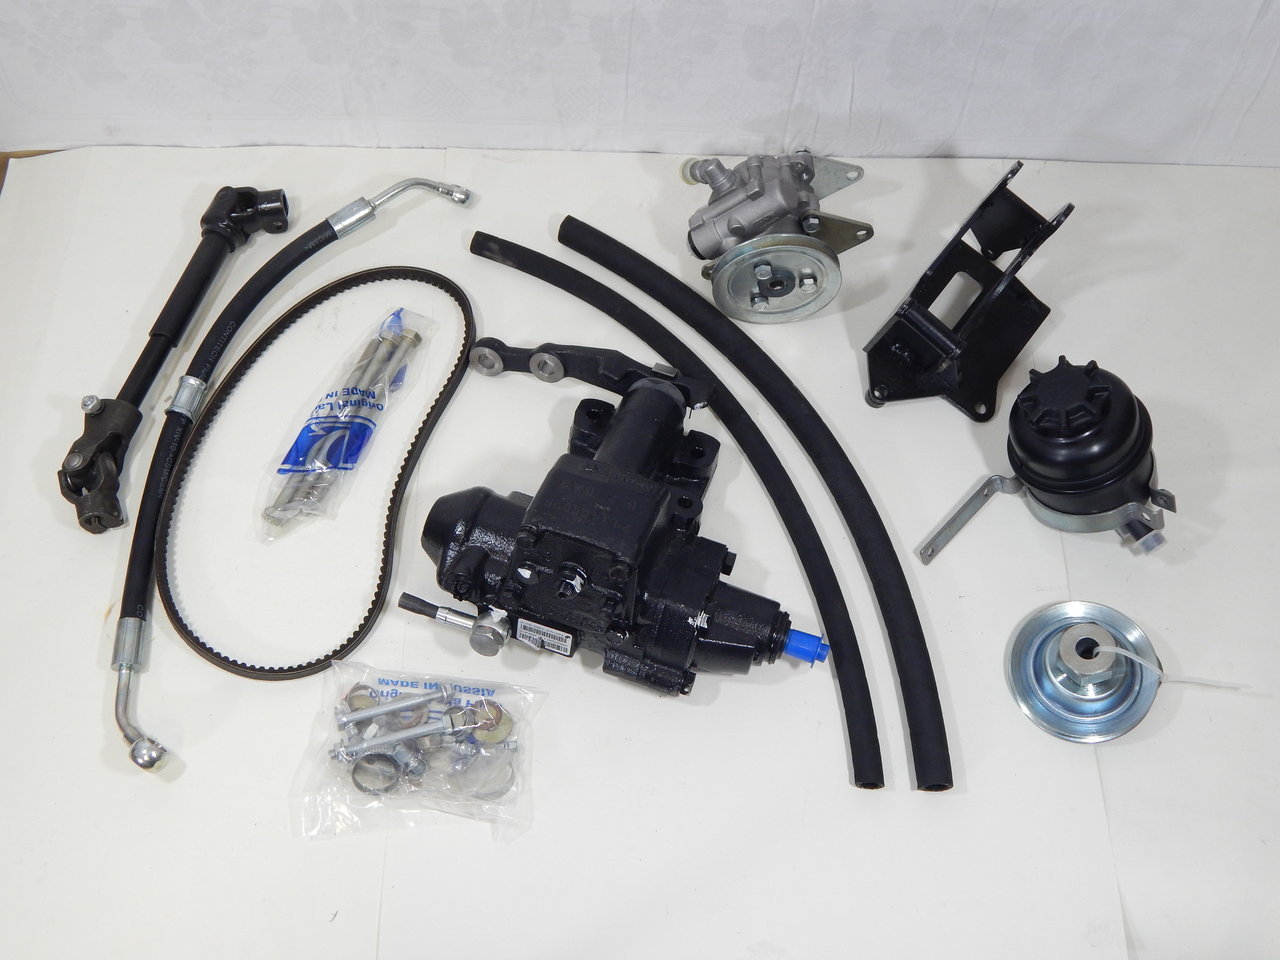 How Much Is A Power Steering Pump >> Power Steering Set Power Steering Power Steering Pump And Much More Lada Niva 4x4 1700cc